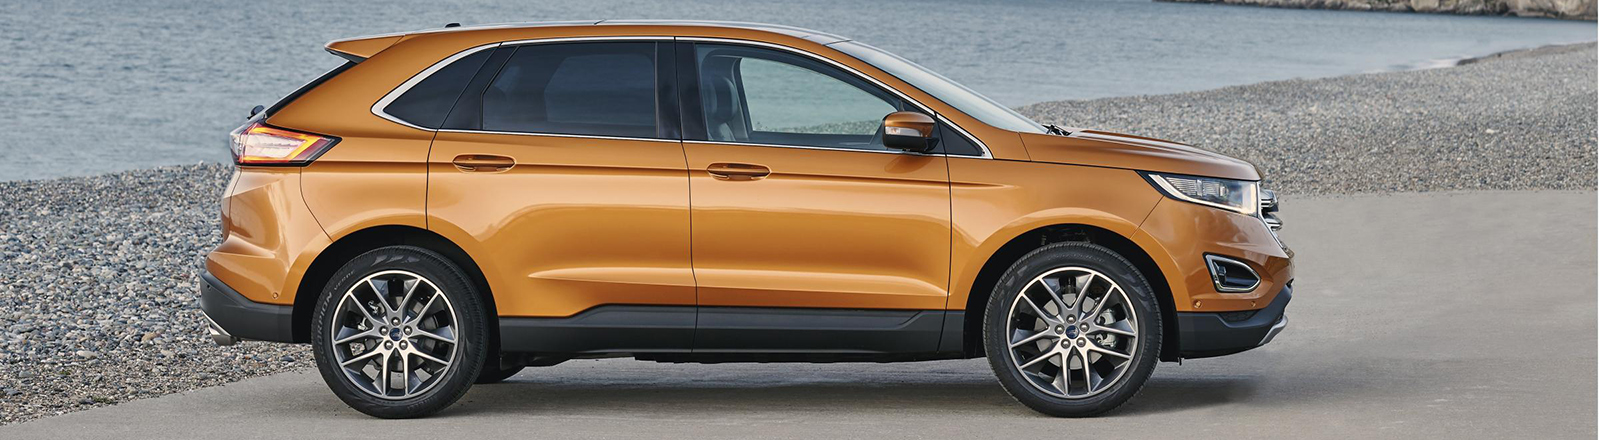 Save Money On Your New Ford Edge Using Our Configurator To View The Best Carwow Deals Or Check Out Our Pcp Calculator To Get A Better Idea How Much It Could